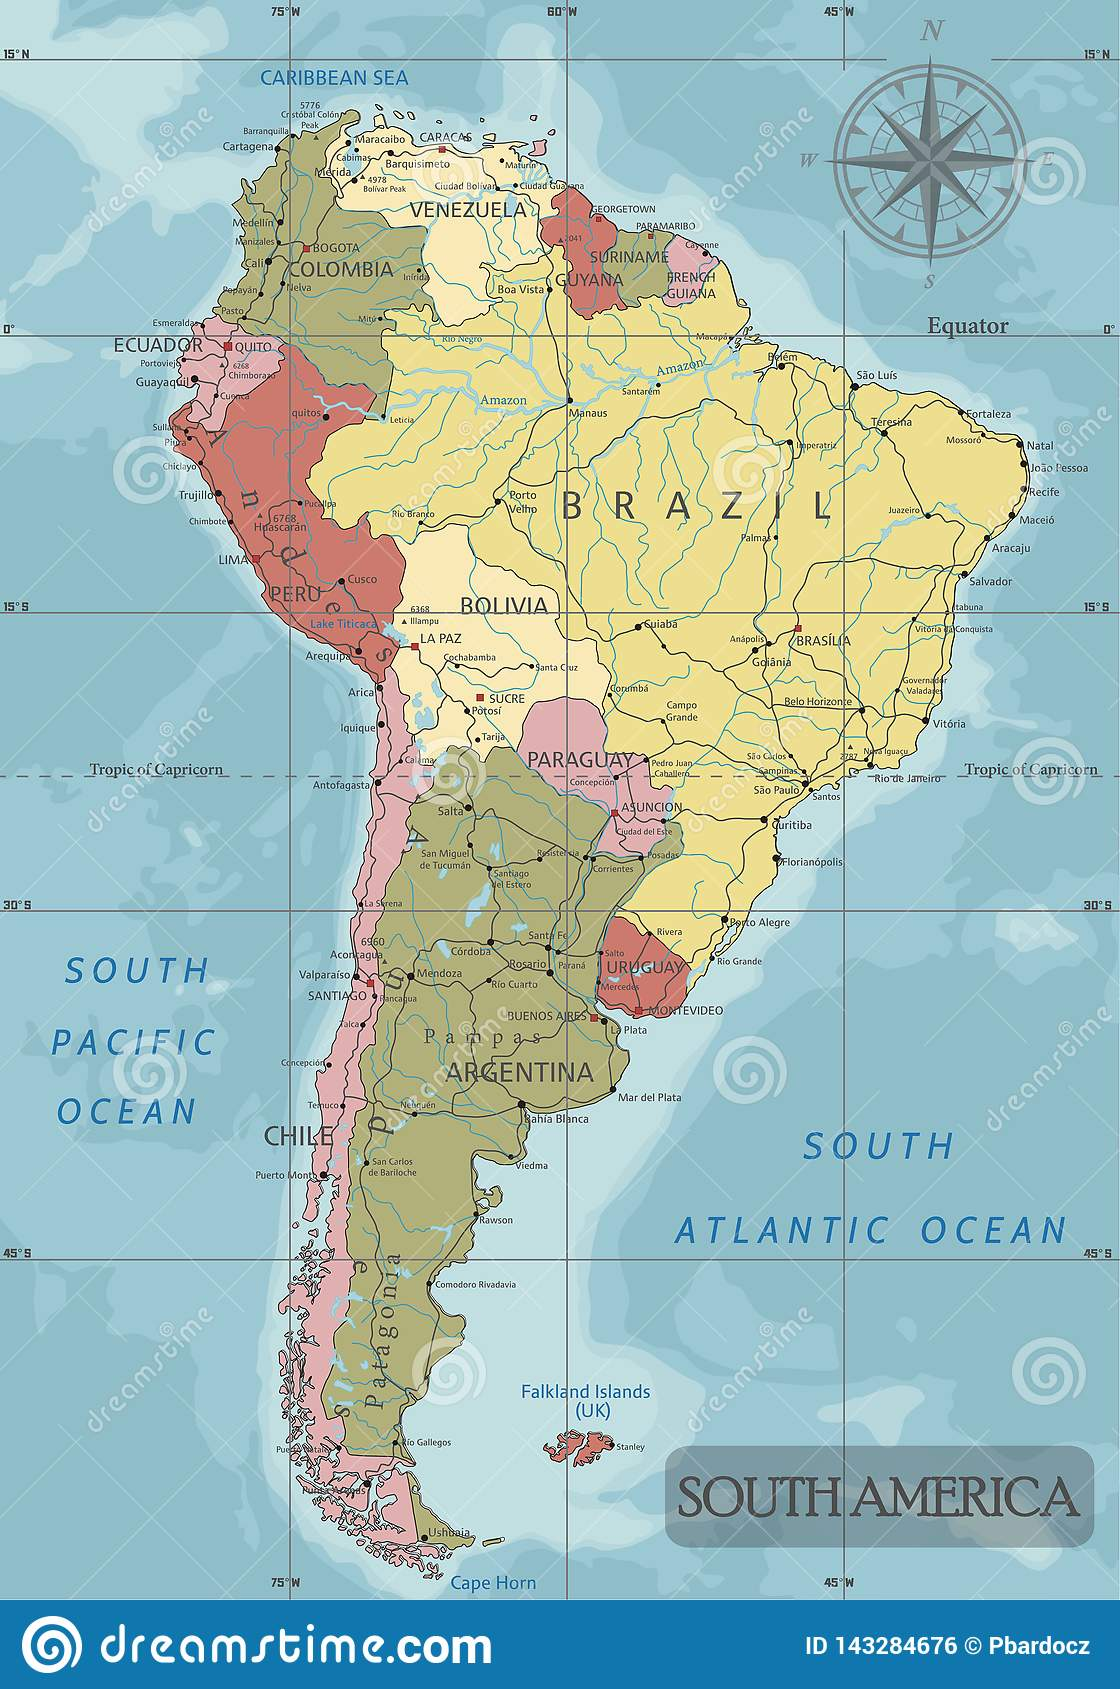 """Detailed South America Political Map In Mercator Projection ... on physical map, gnomic map, equal area map, isoline map, transverse mercator projection, latitude map, mollweide projection map, cylindrical map, proportional symbol map, waterman """"butterfly"""" world map projection, conical map, gall peters map, polar map, conic map, map projection, robinson map, peters projection map, azimuthal map, ortelius map, fuller map, dymaxion map, flow line map, gerardus mercator, conformal map, thematic map, chloropleth map,"""